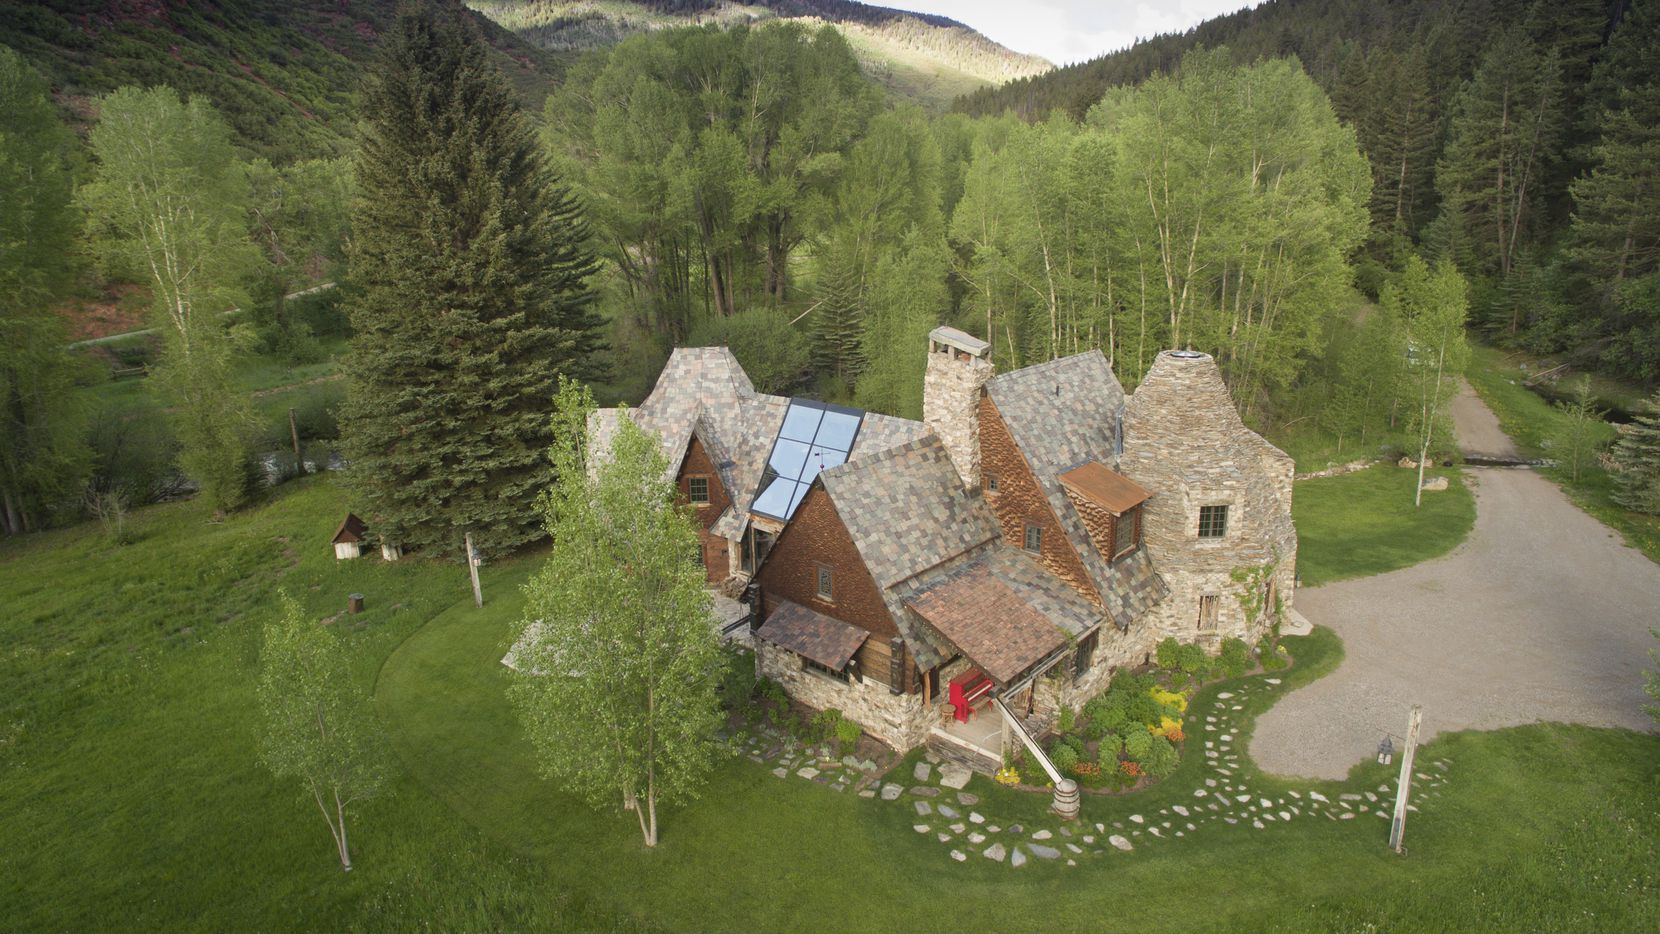 One of the six homes on a sprawling Colorado ranch that sold for nearly $13 million in August to Mehrdad Moayedi, chief executive of Centurion American Development Group, one of Dallas-Fort Worth's largest residential builders.